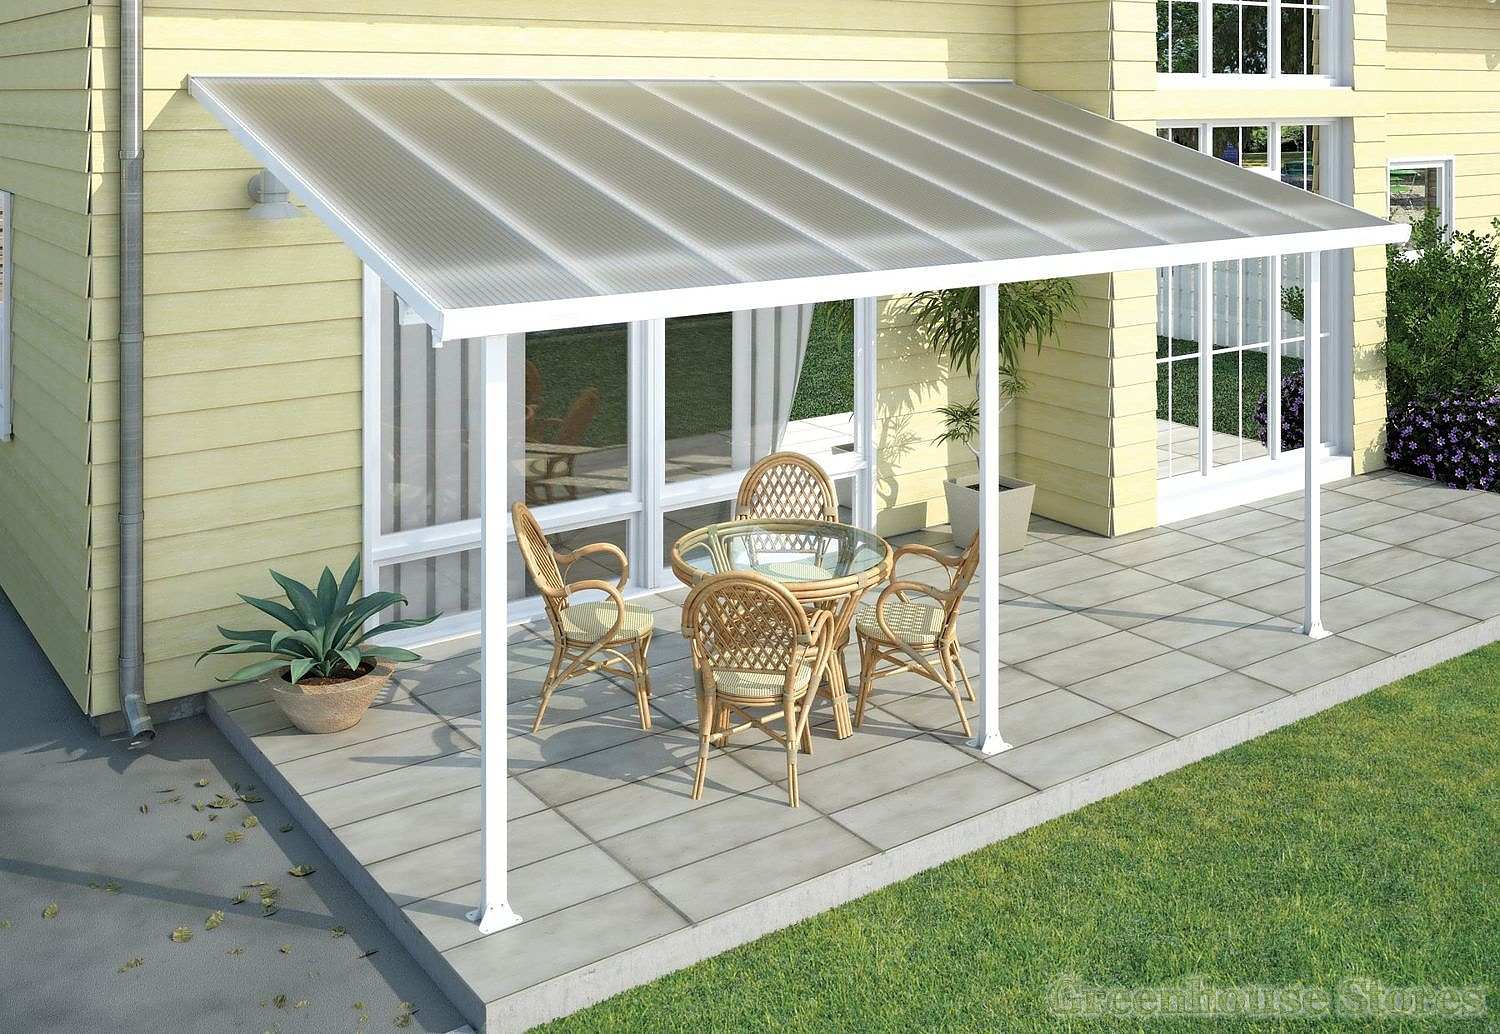 Palram Feria 3m Patio Cover in 7 Lengths Greenhouse Stores